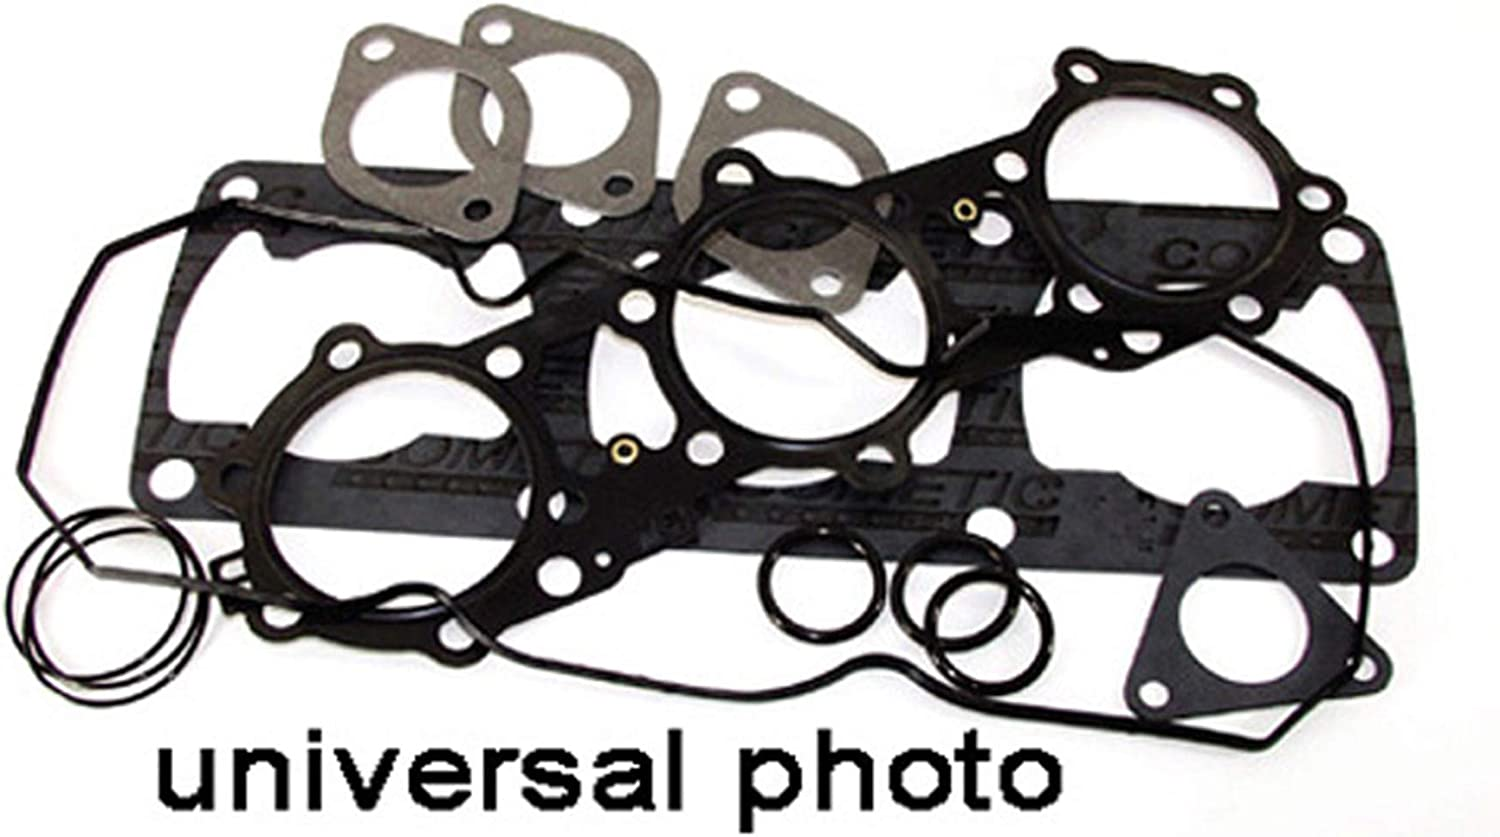 Top End Gasket Kit Honda 1987 XR80R Fits Brand Selling and selling Cheap Sale Venue